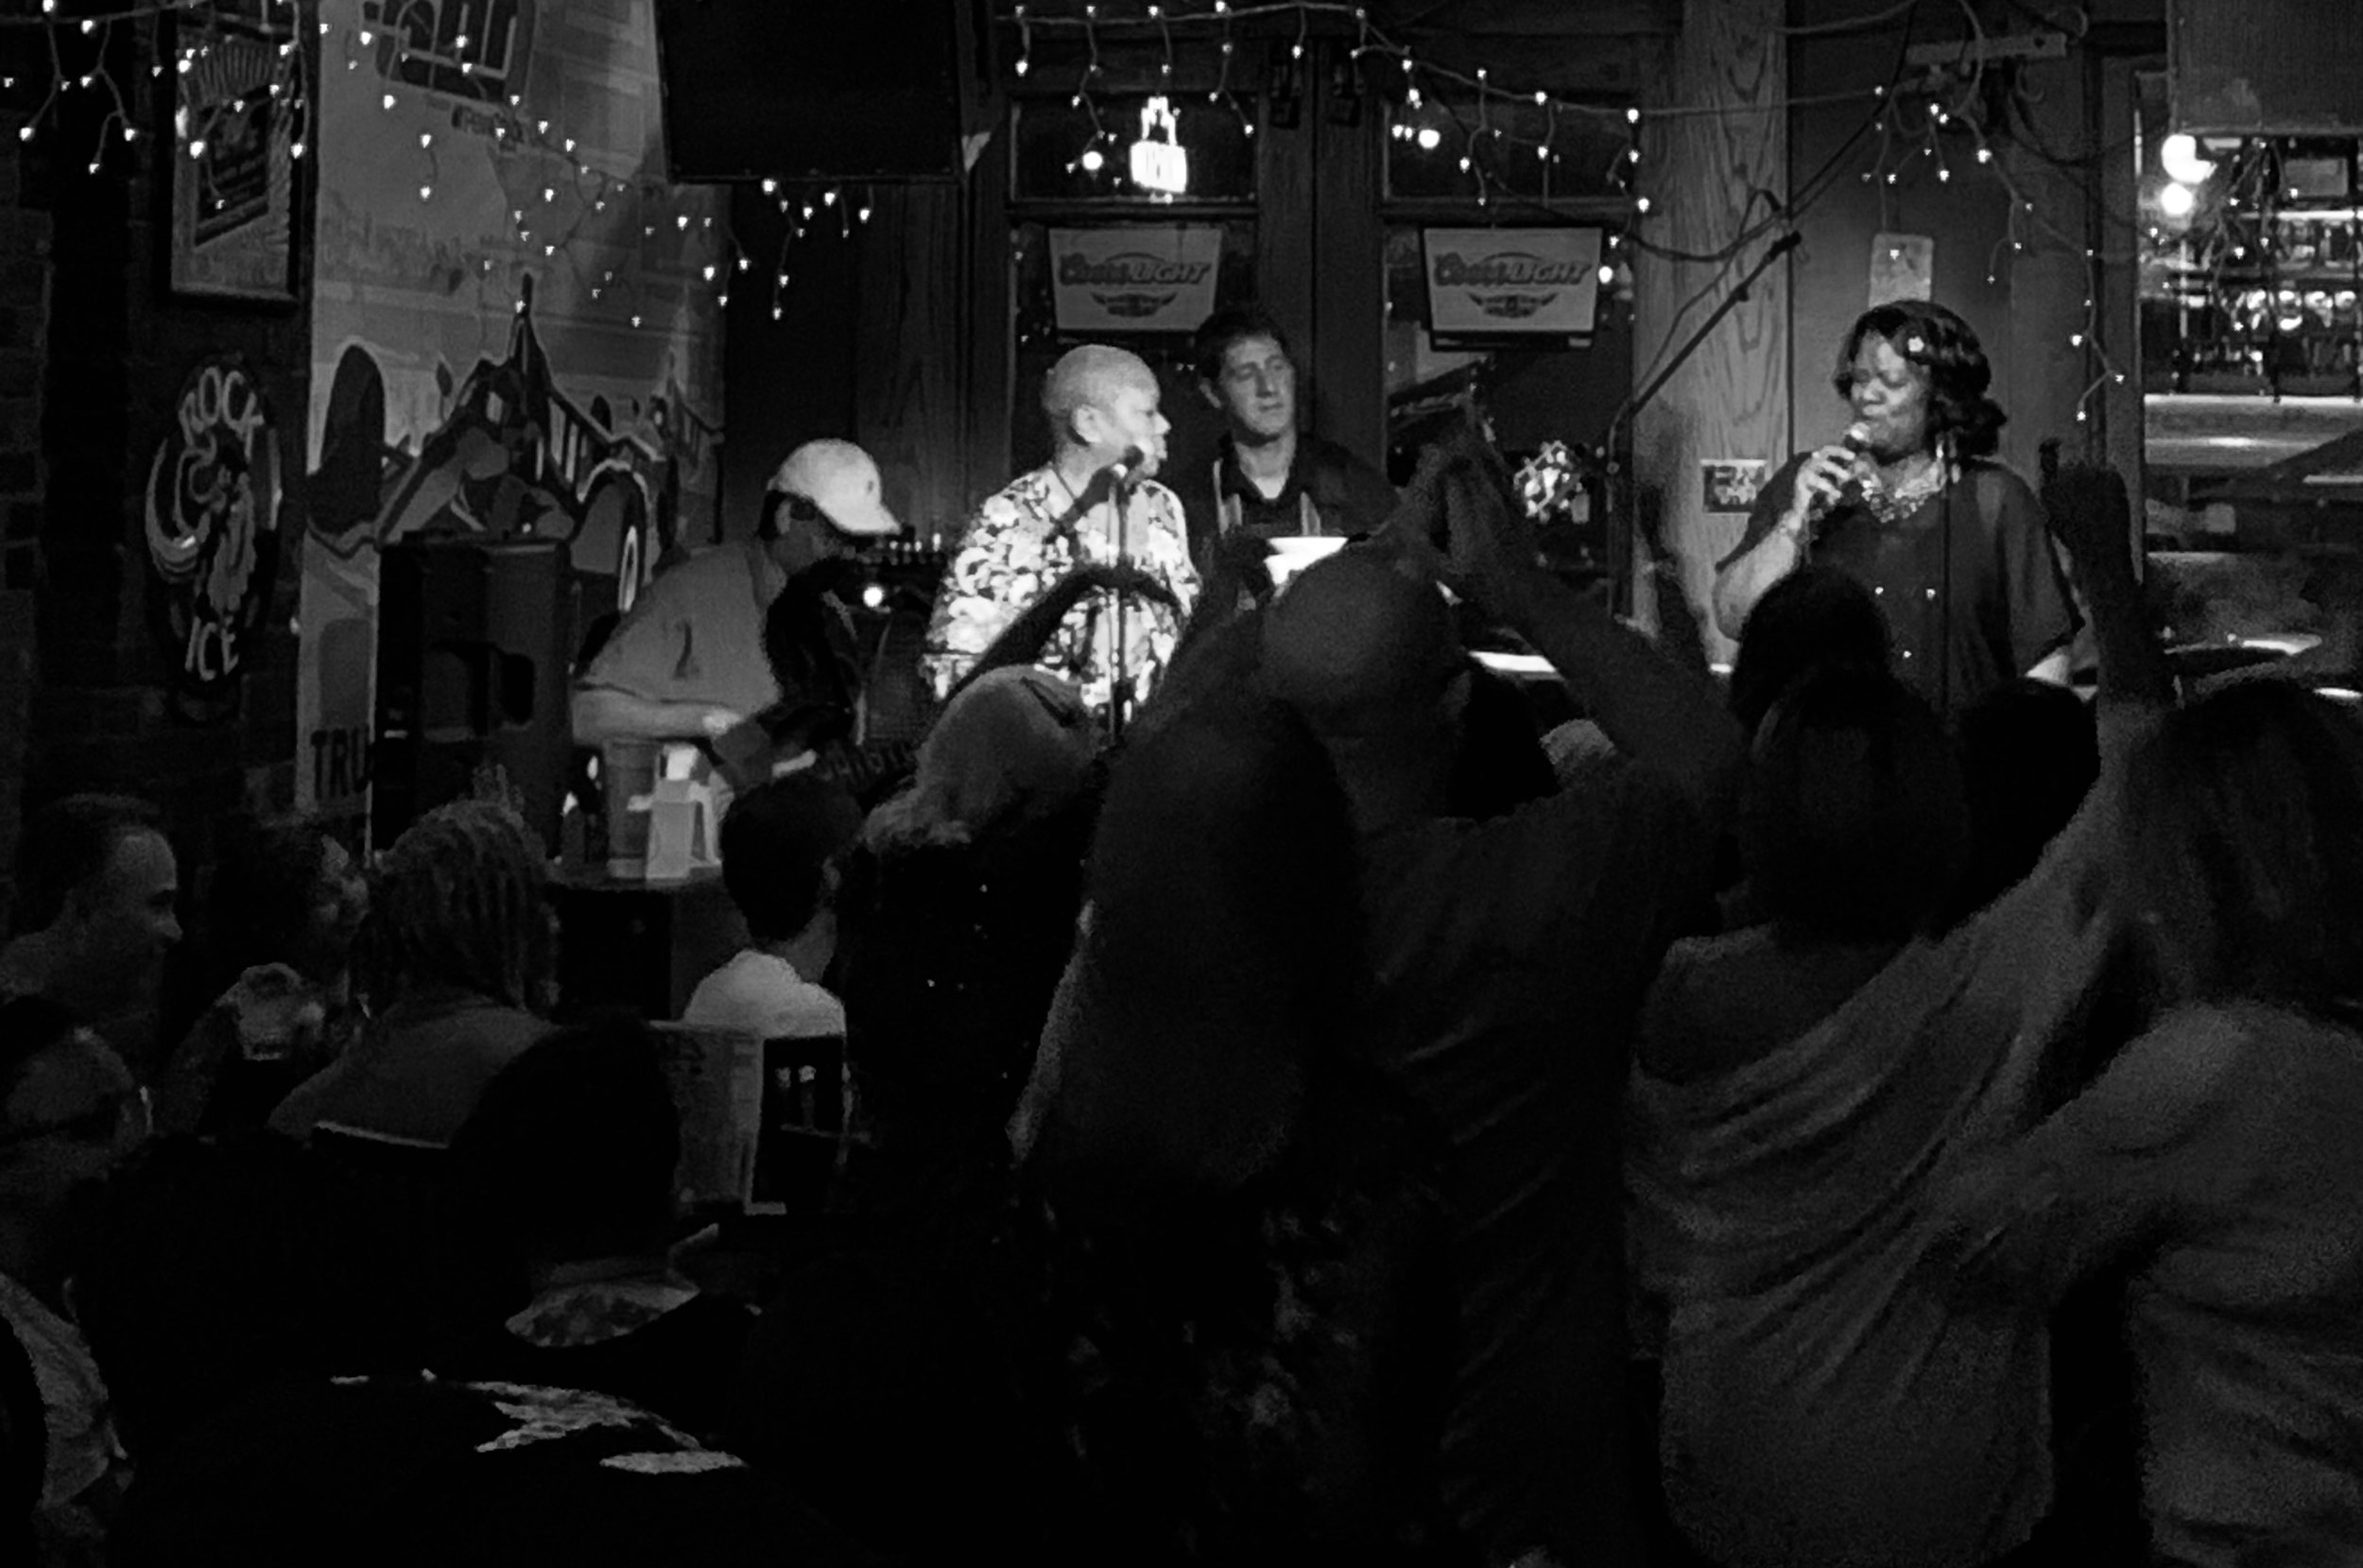 Blues at the Slippery Noodle in Indianapolis